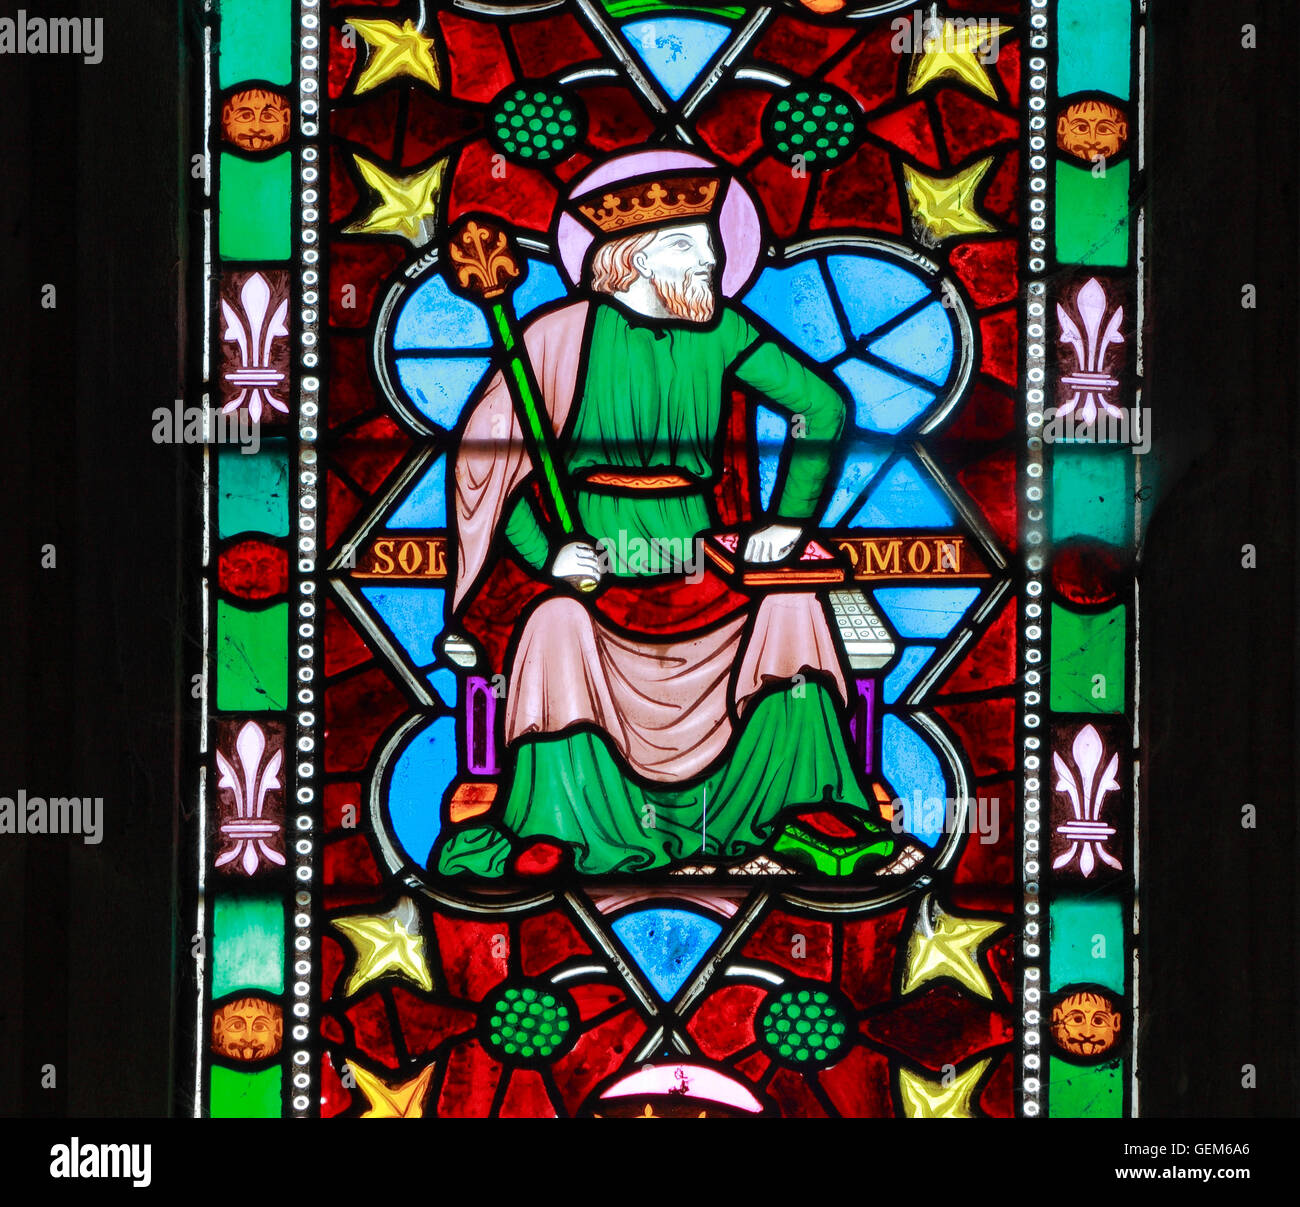 King Solomon, stained glass window, Old Hunstanton, detail of stained glass window by Frederick Preedy 1862 Tree Stock Photo